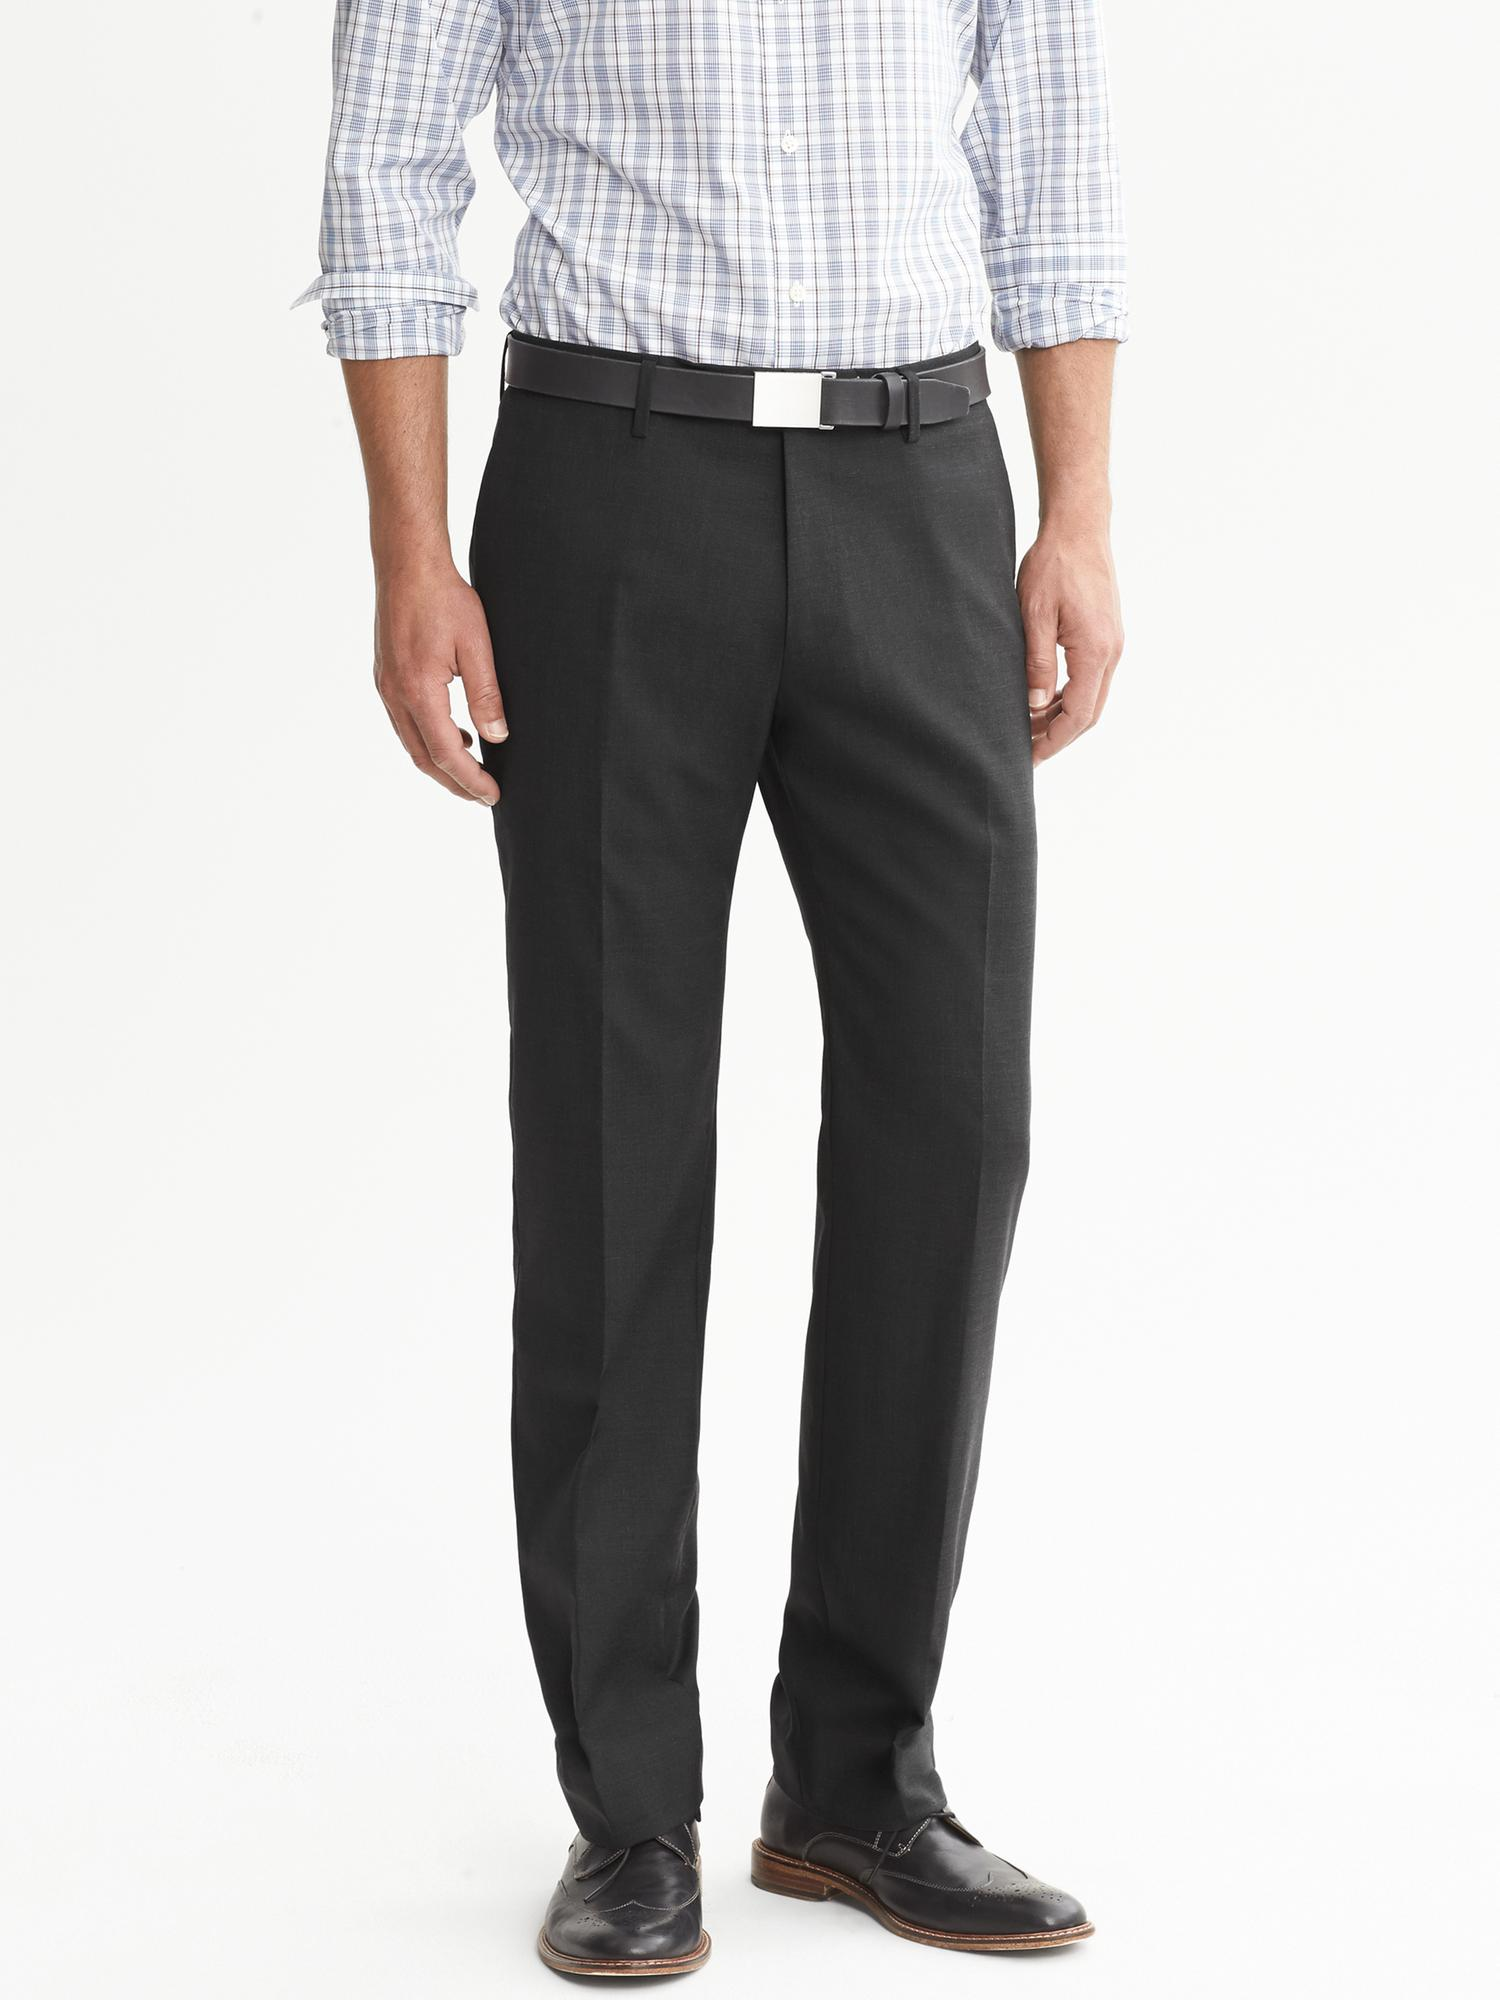 Shop for men's charcoal mens dress pants online at Men's Wearhouse. Browse the latest charcoal mens dress pants styles & selection from gtacashbank.ga, the leader in men's apparel. FREE Shipping on orders $99+!